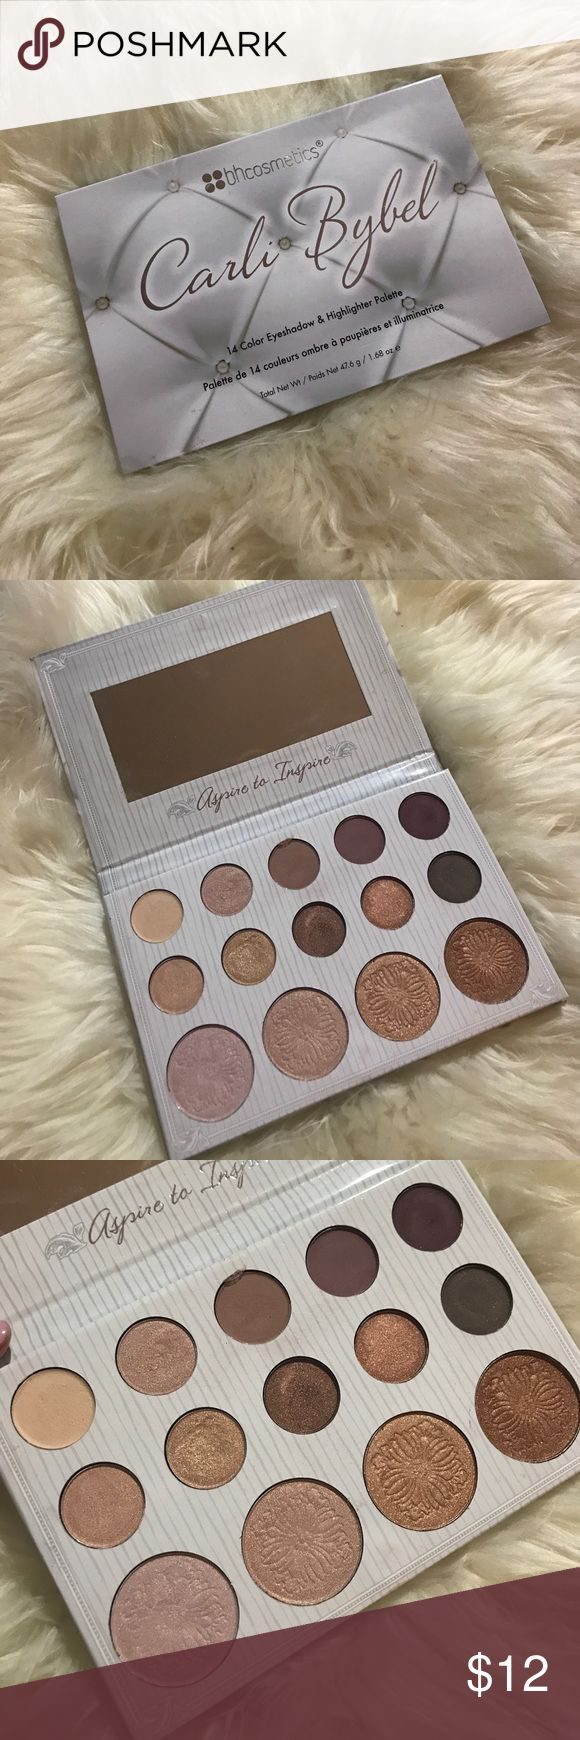 BH Cosmetics x Carli Bybel Palette Gorgeous palette. Has been swatched only. bh cosmetics Makeup Eyeshadow